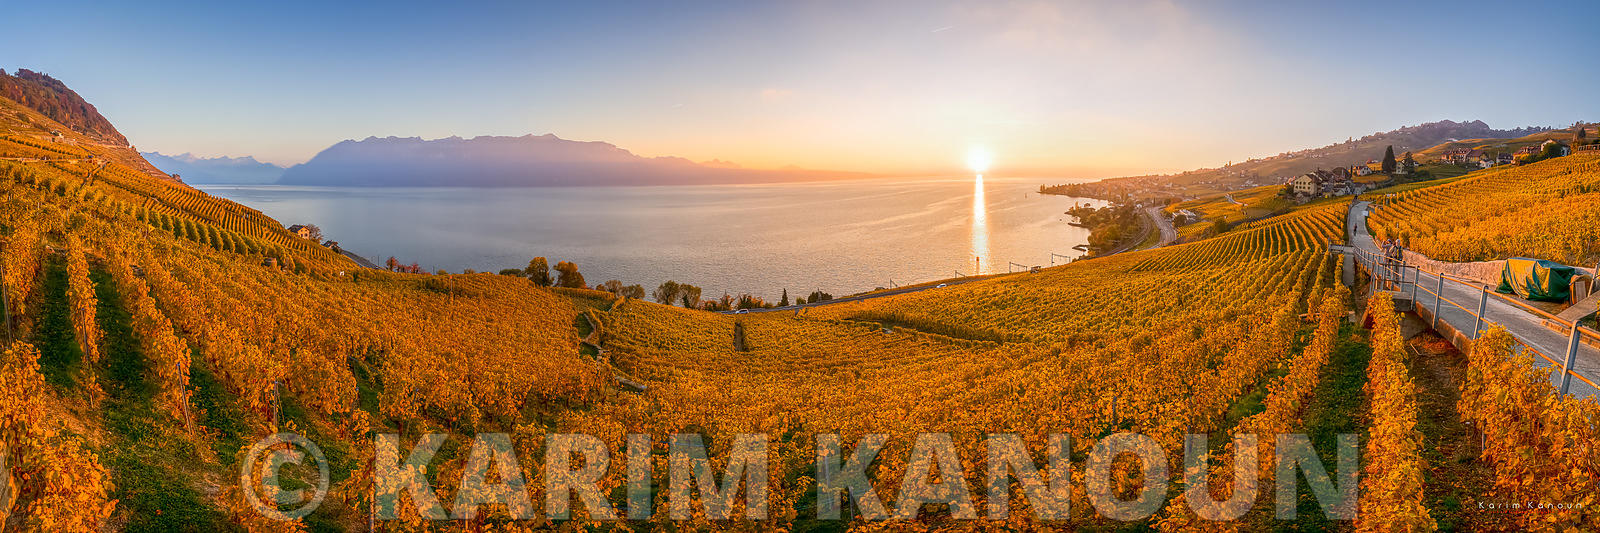 Golden Vineyards surrounding Lac Léman - Lavaux | Autumn